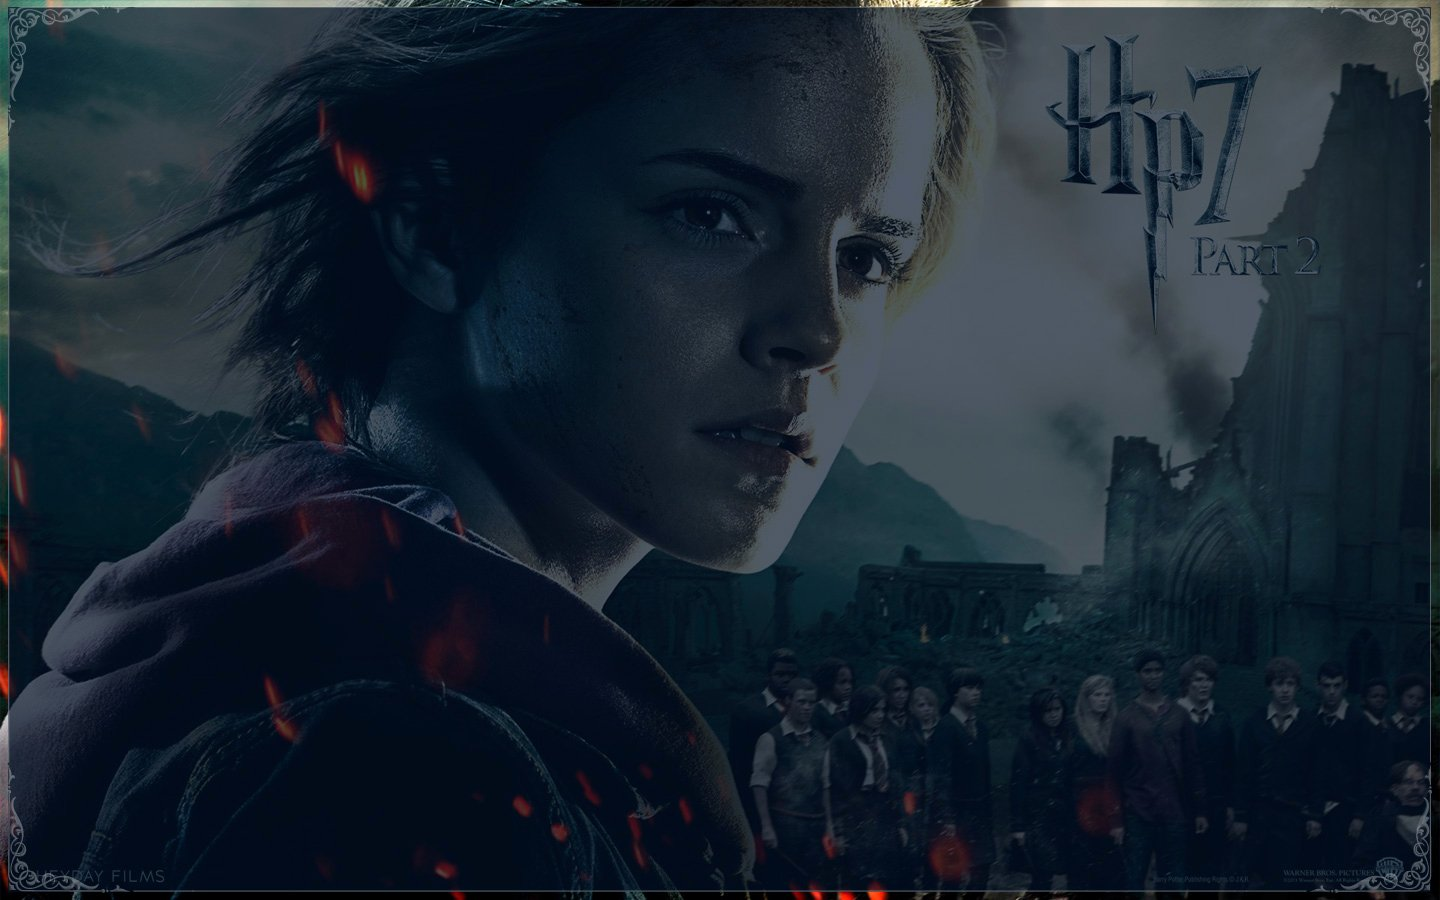 Harry Potter Powerpoint Template Best Of Harry Potter and the Deathly Hallows Part 2 Wallpapers